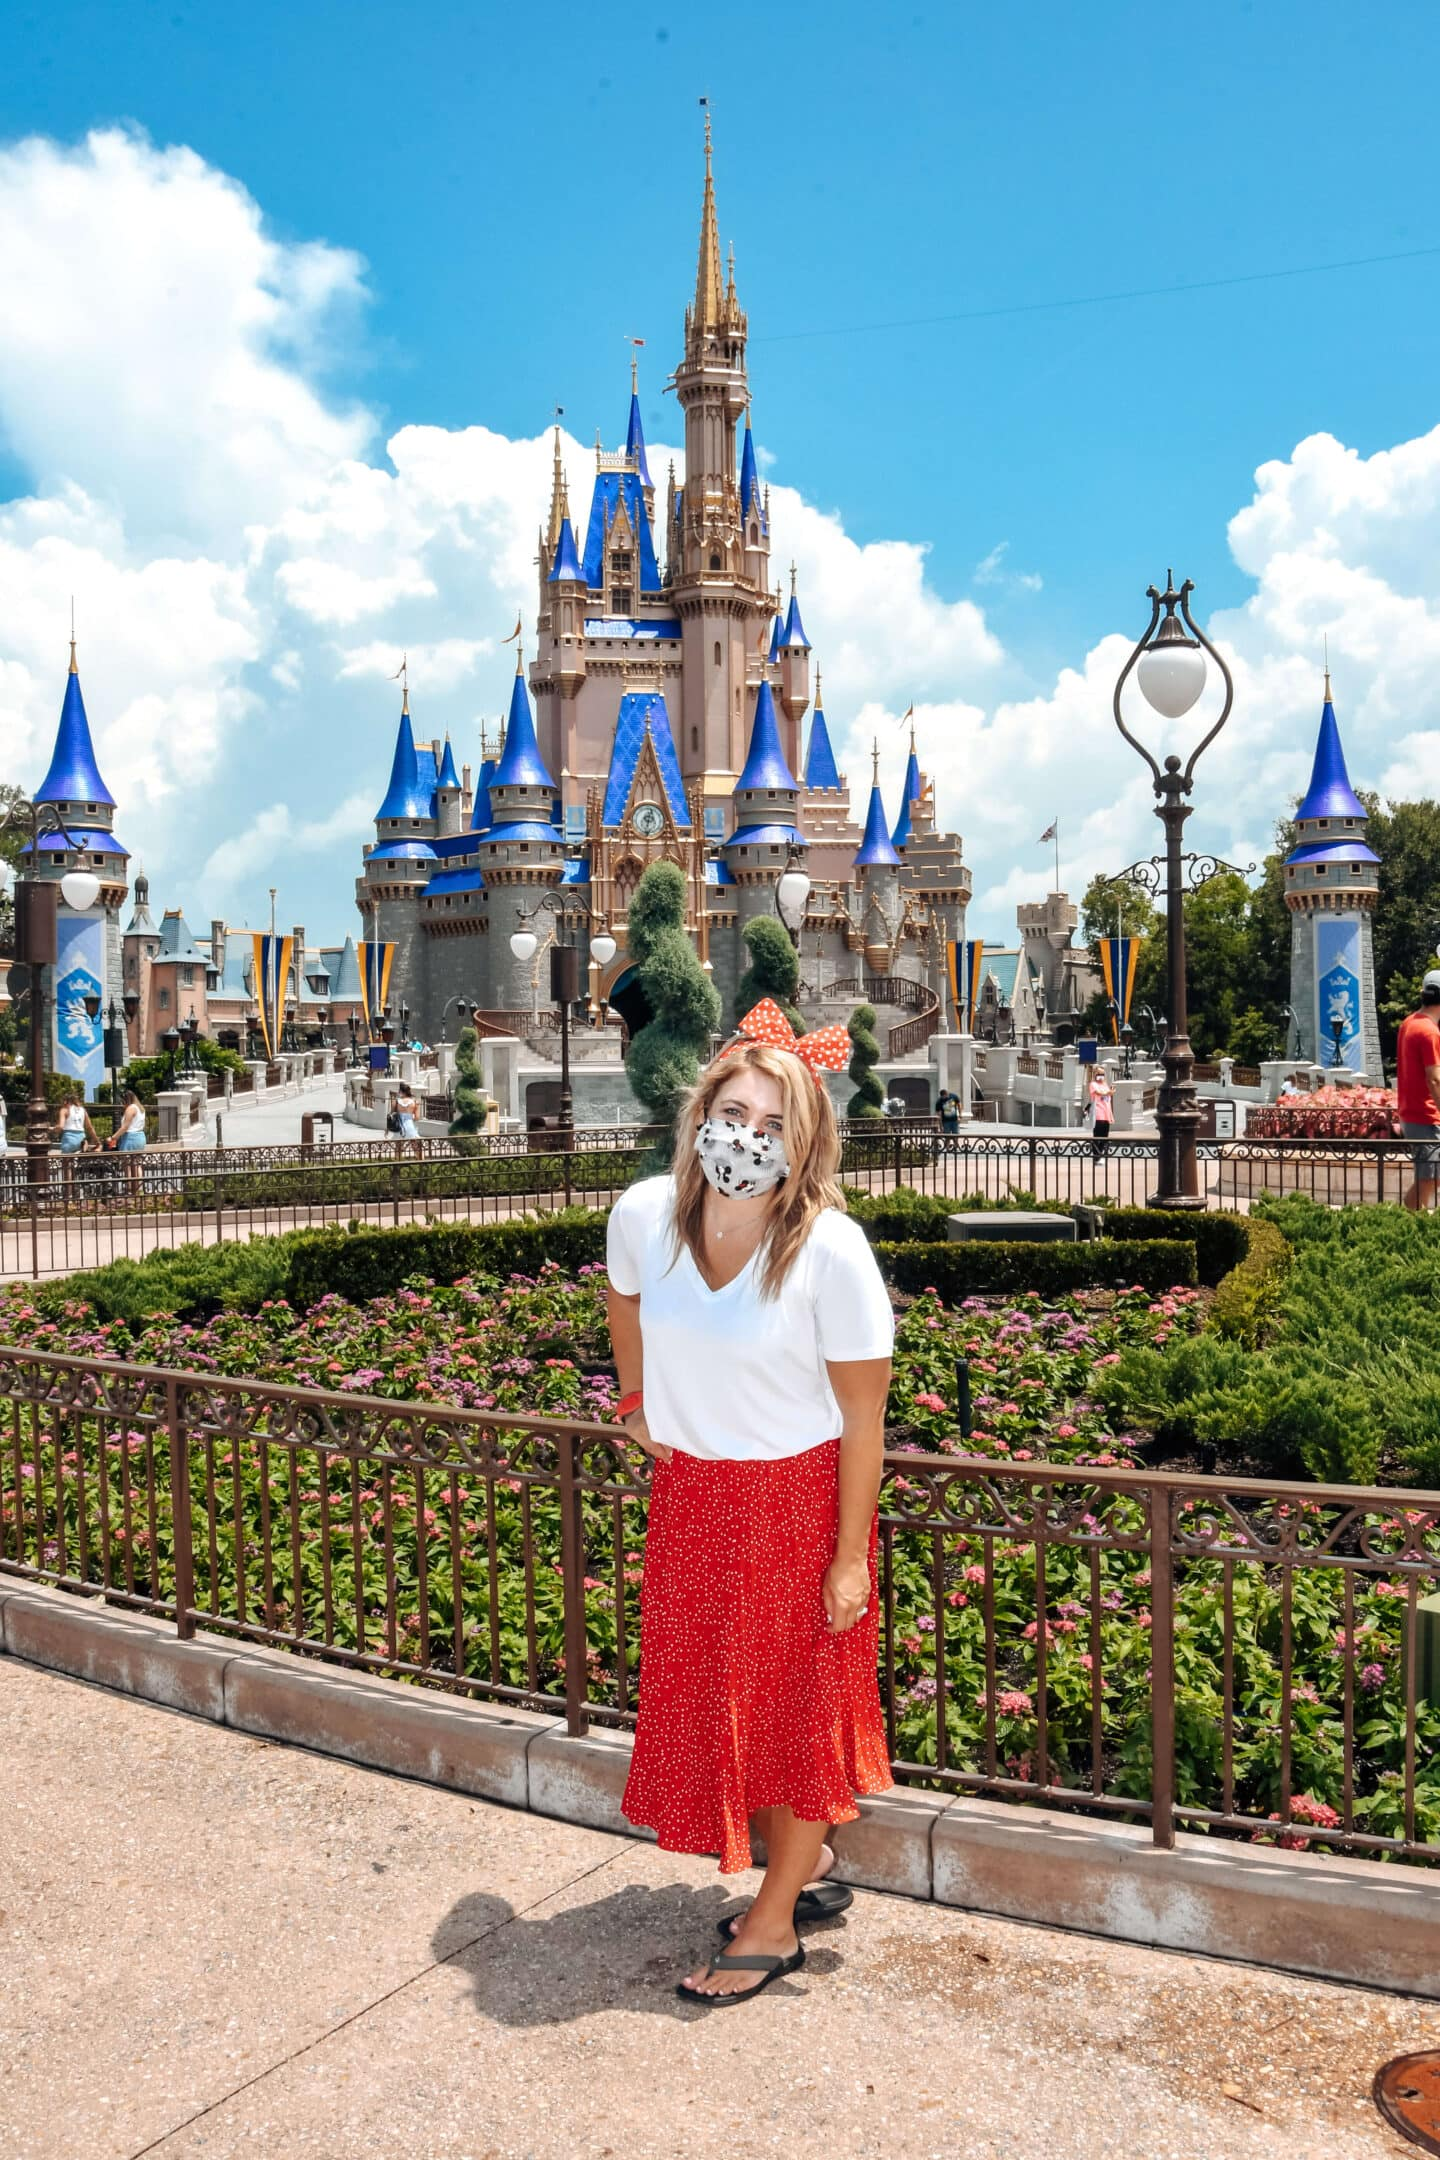 Should I Visit Disney World Right Now? Taking a Disney Trip in 2020 or 2021